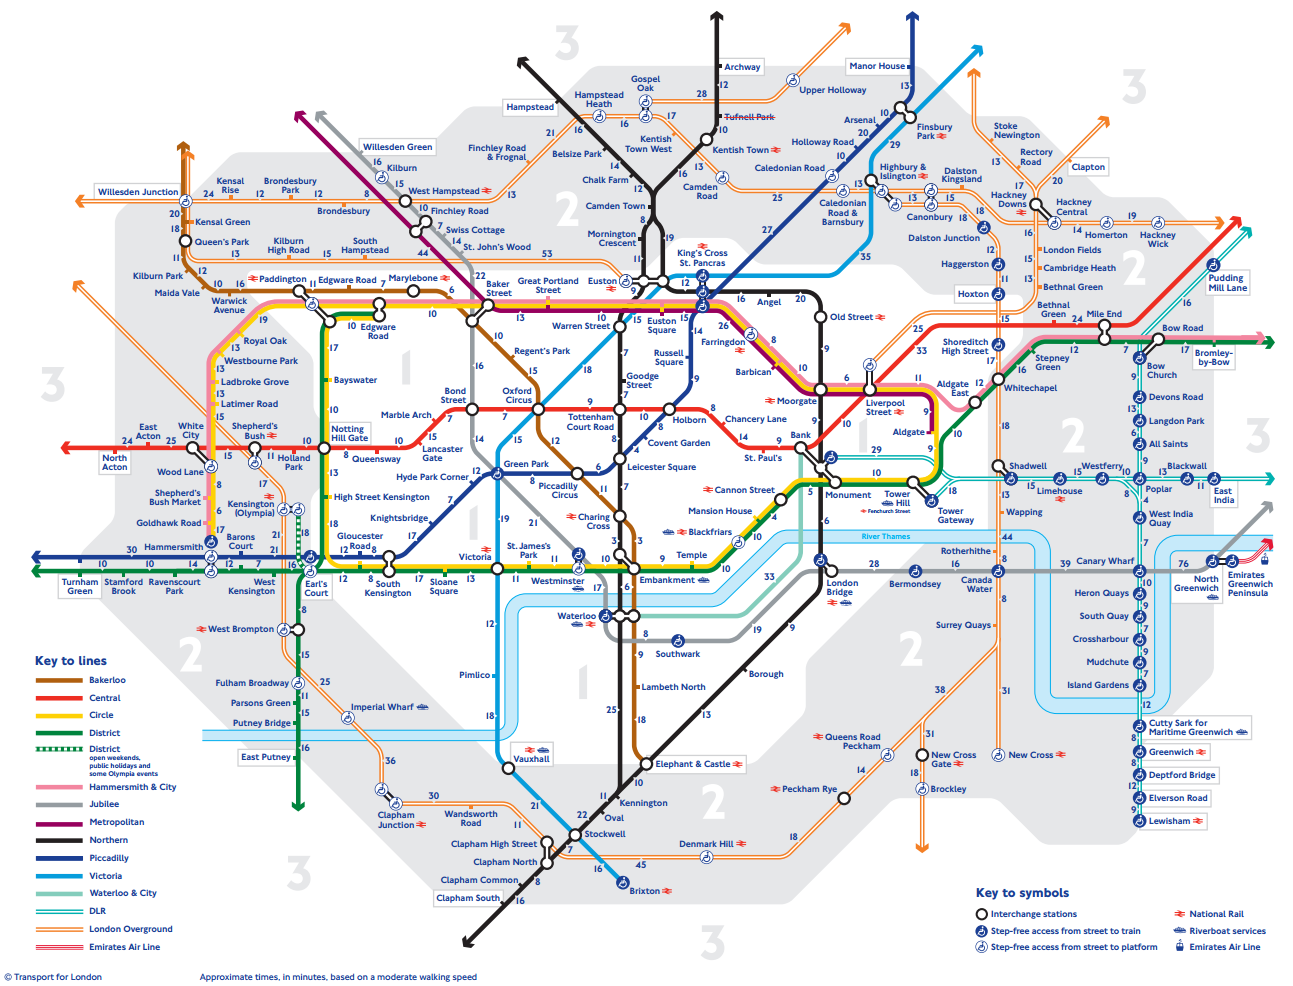 New London tube map shows walking times between stations